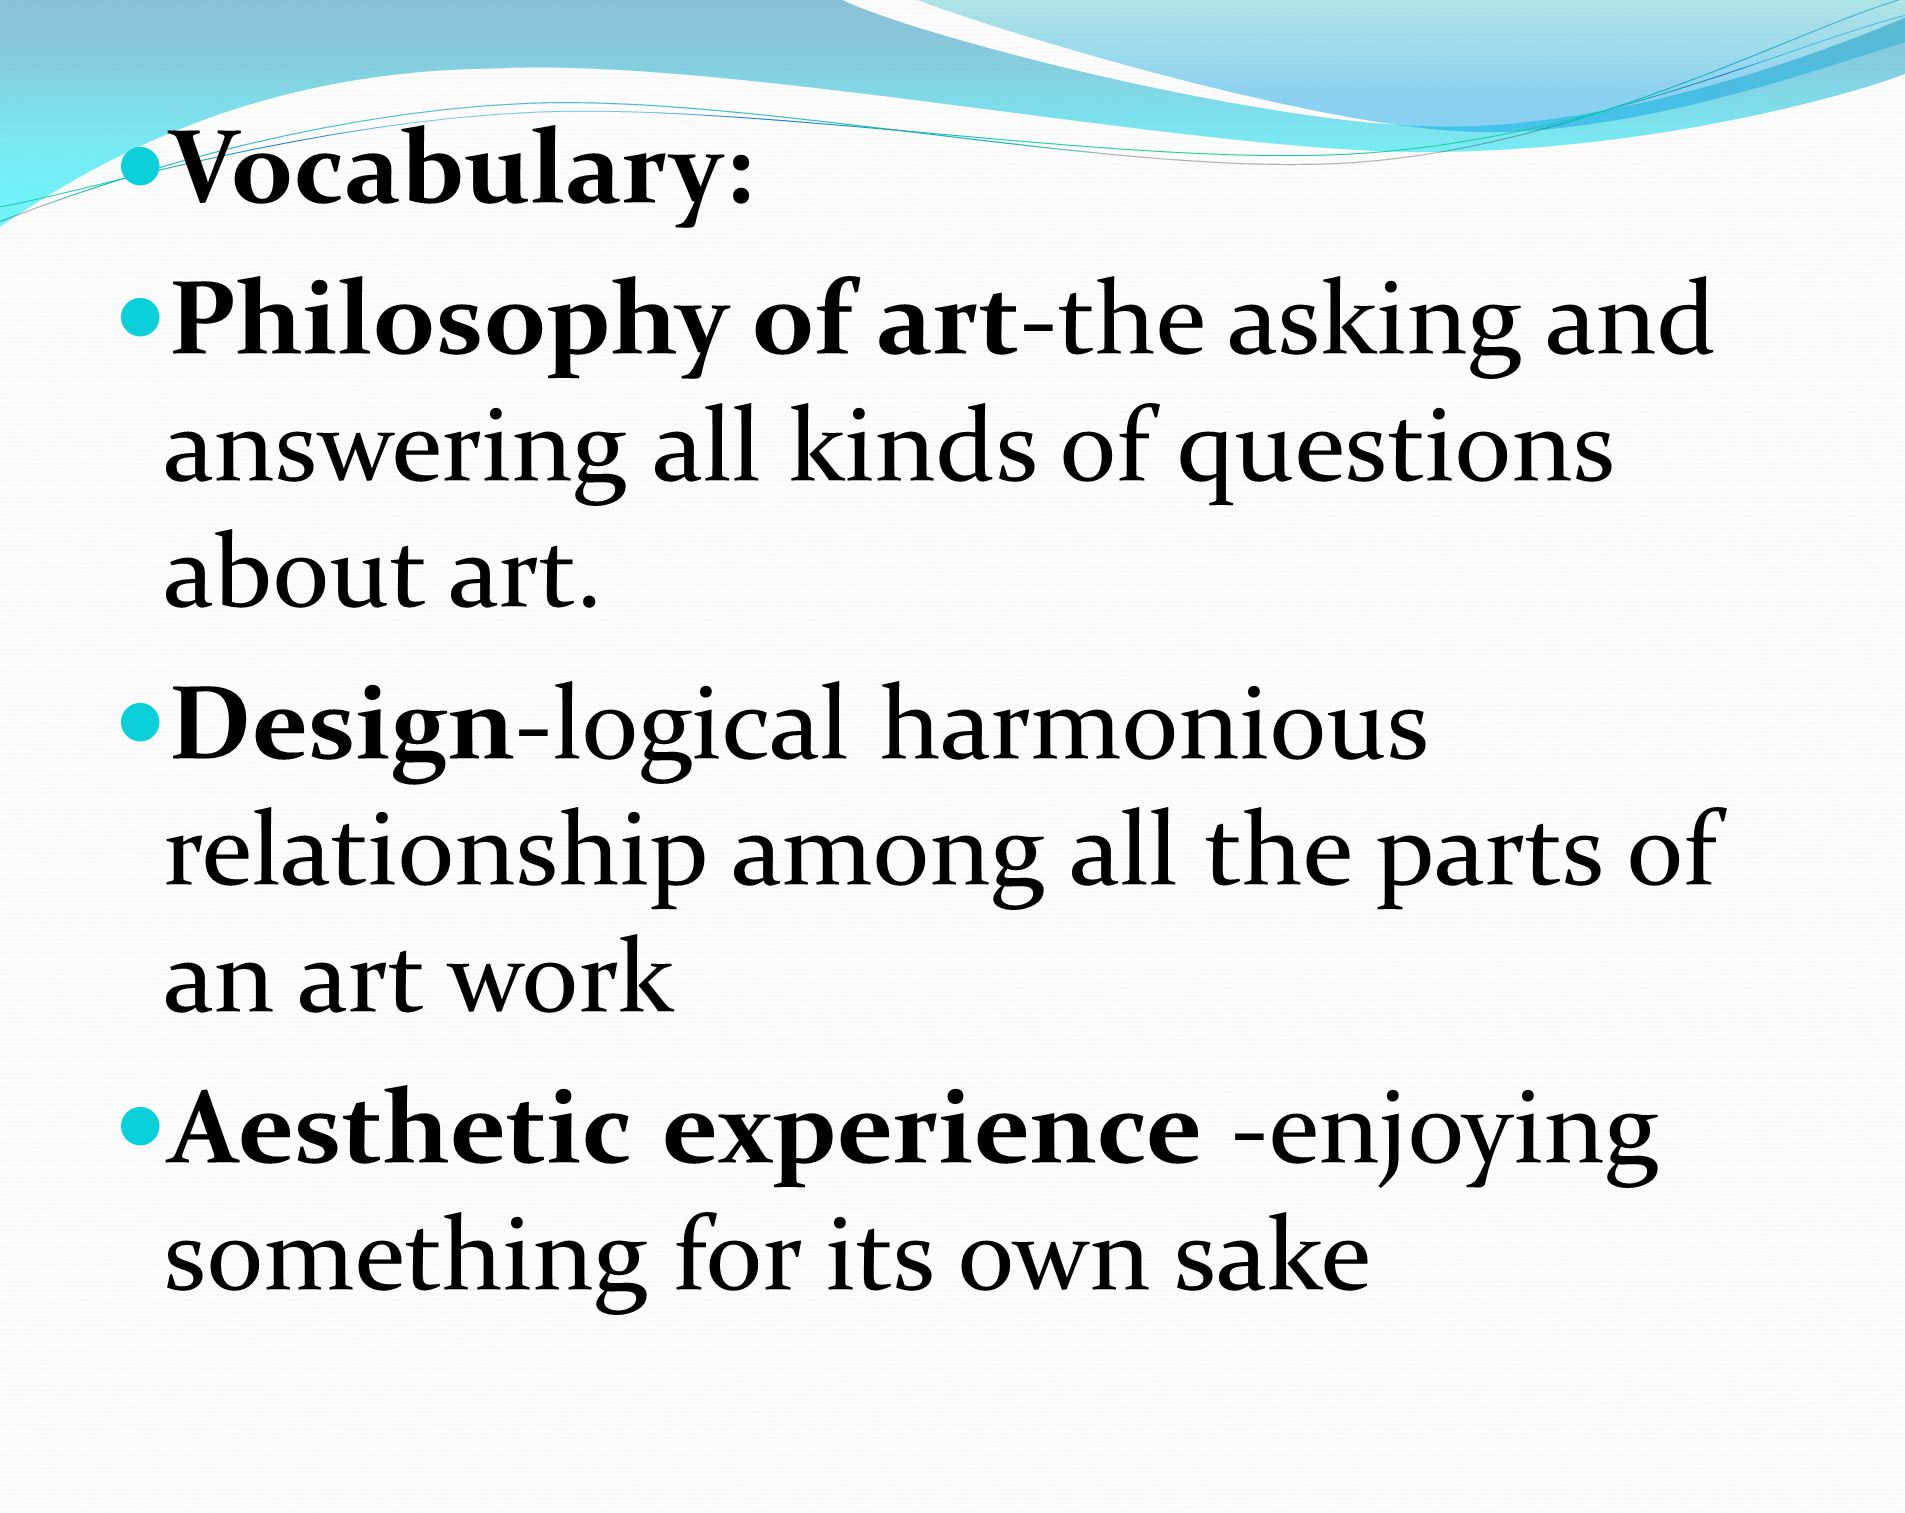 Vocabulary: Philosophy of art-the asking and answering all kinds of questions about art.